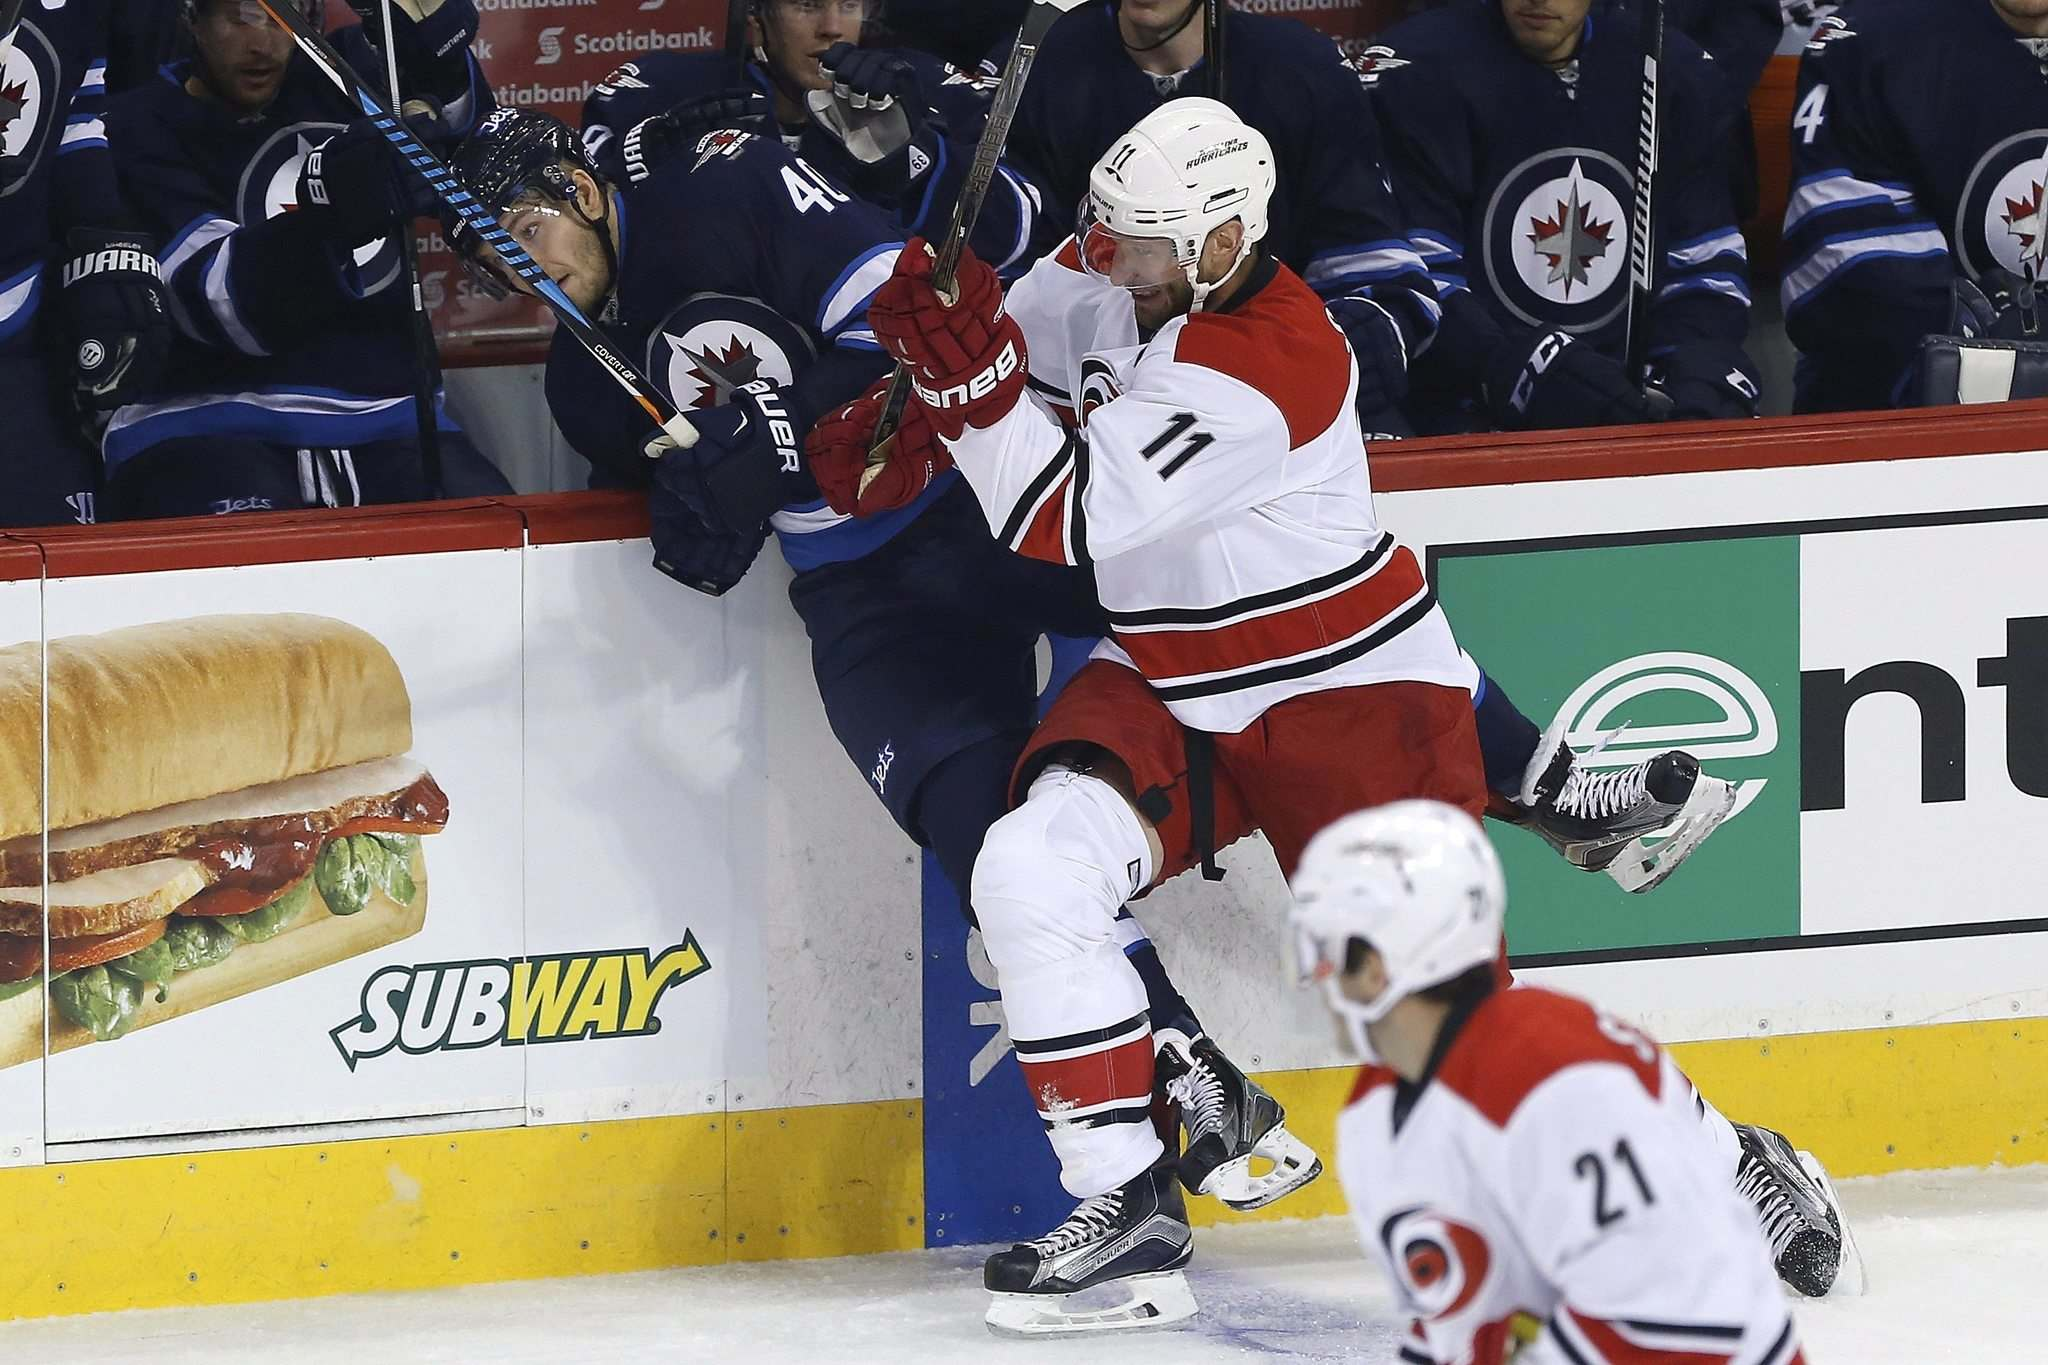 John Woods / The Canadian Press</p><p>Carolina Hurricanes' Jordan Staal (11) checks Winnipeg Jets' Joel Armia (40) into the boards as Hurricanes' Lee Stempniak (21) looks on during first period NHL action in Winnipeg on Thursday.</p>